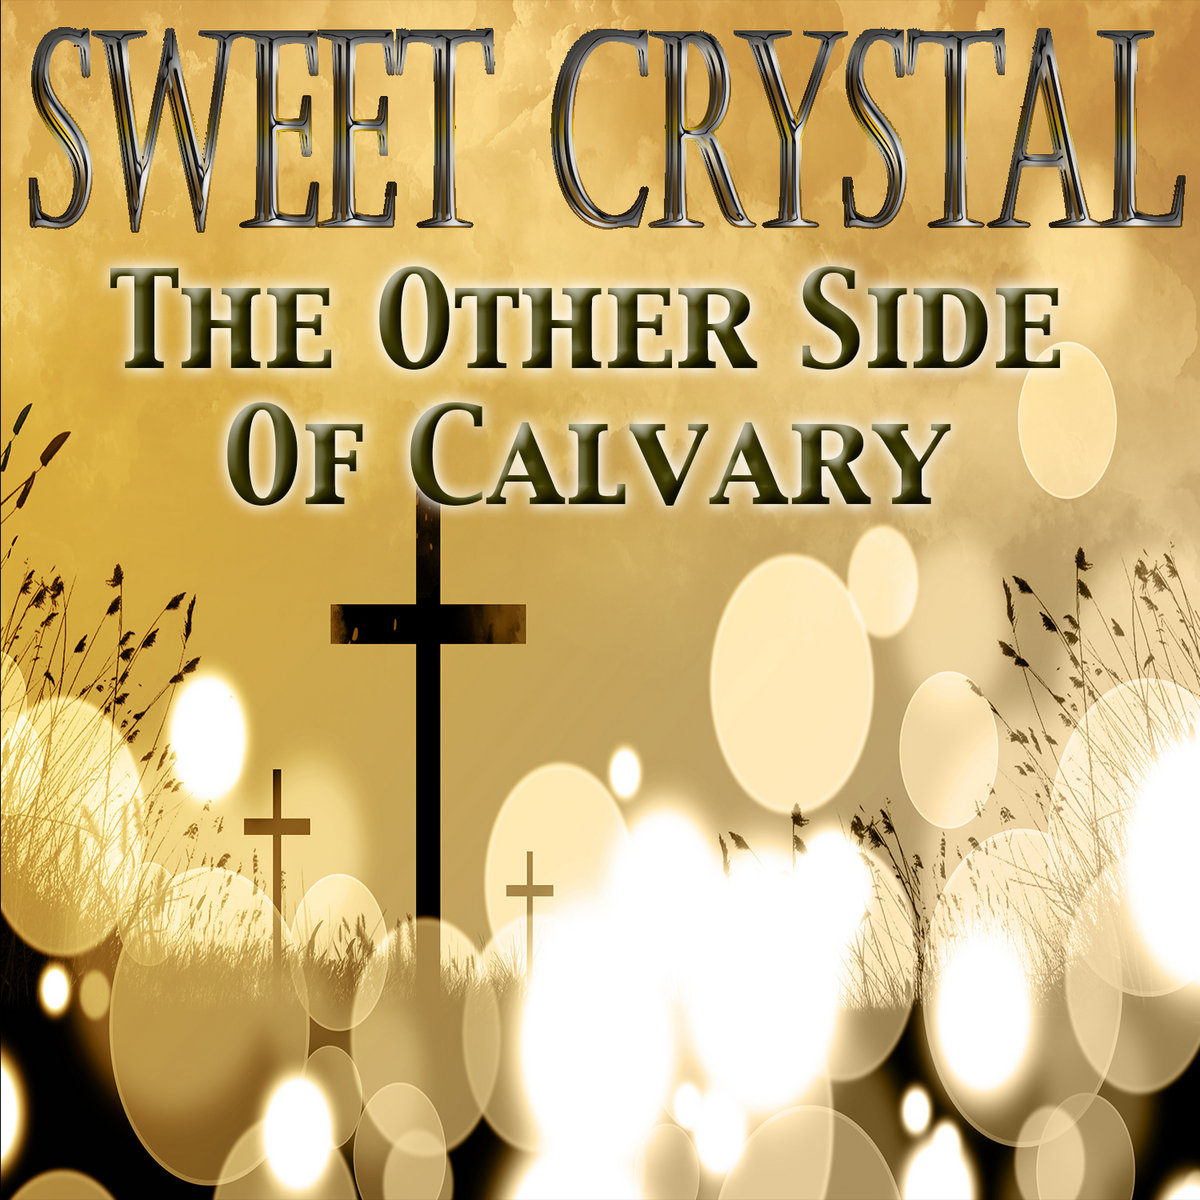 The Other Side Of Calvary by Sweet Crystal